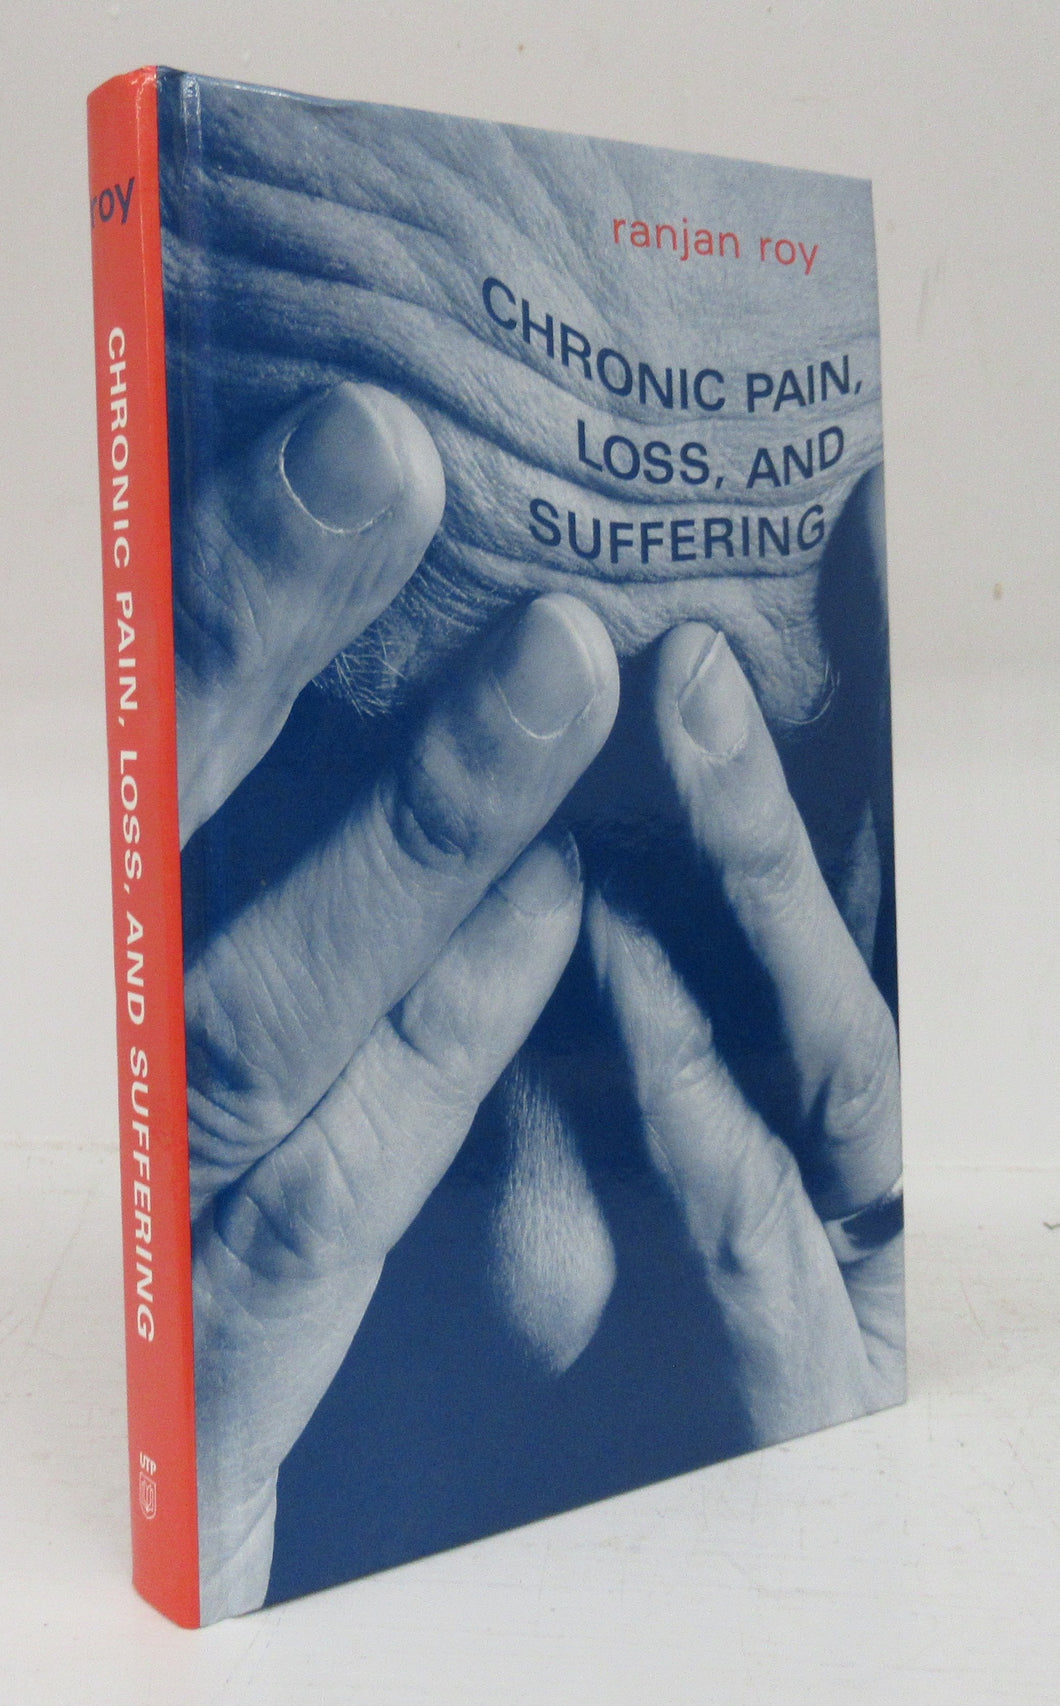 Chronic Pain, Loss, and Suffering